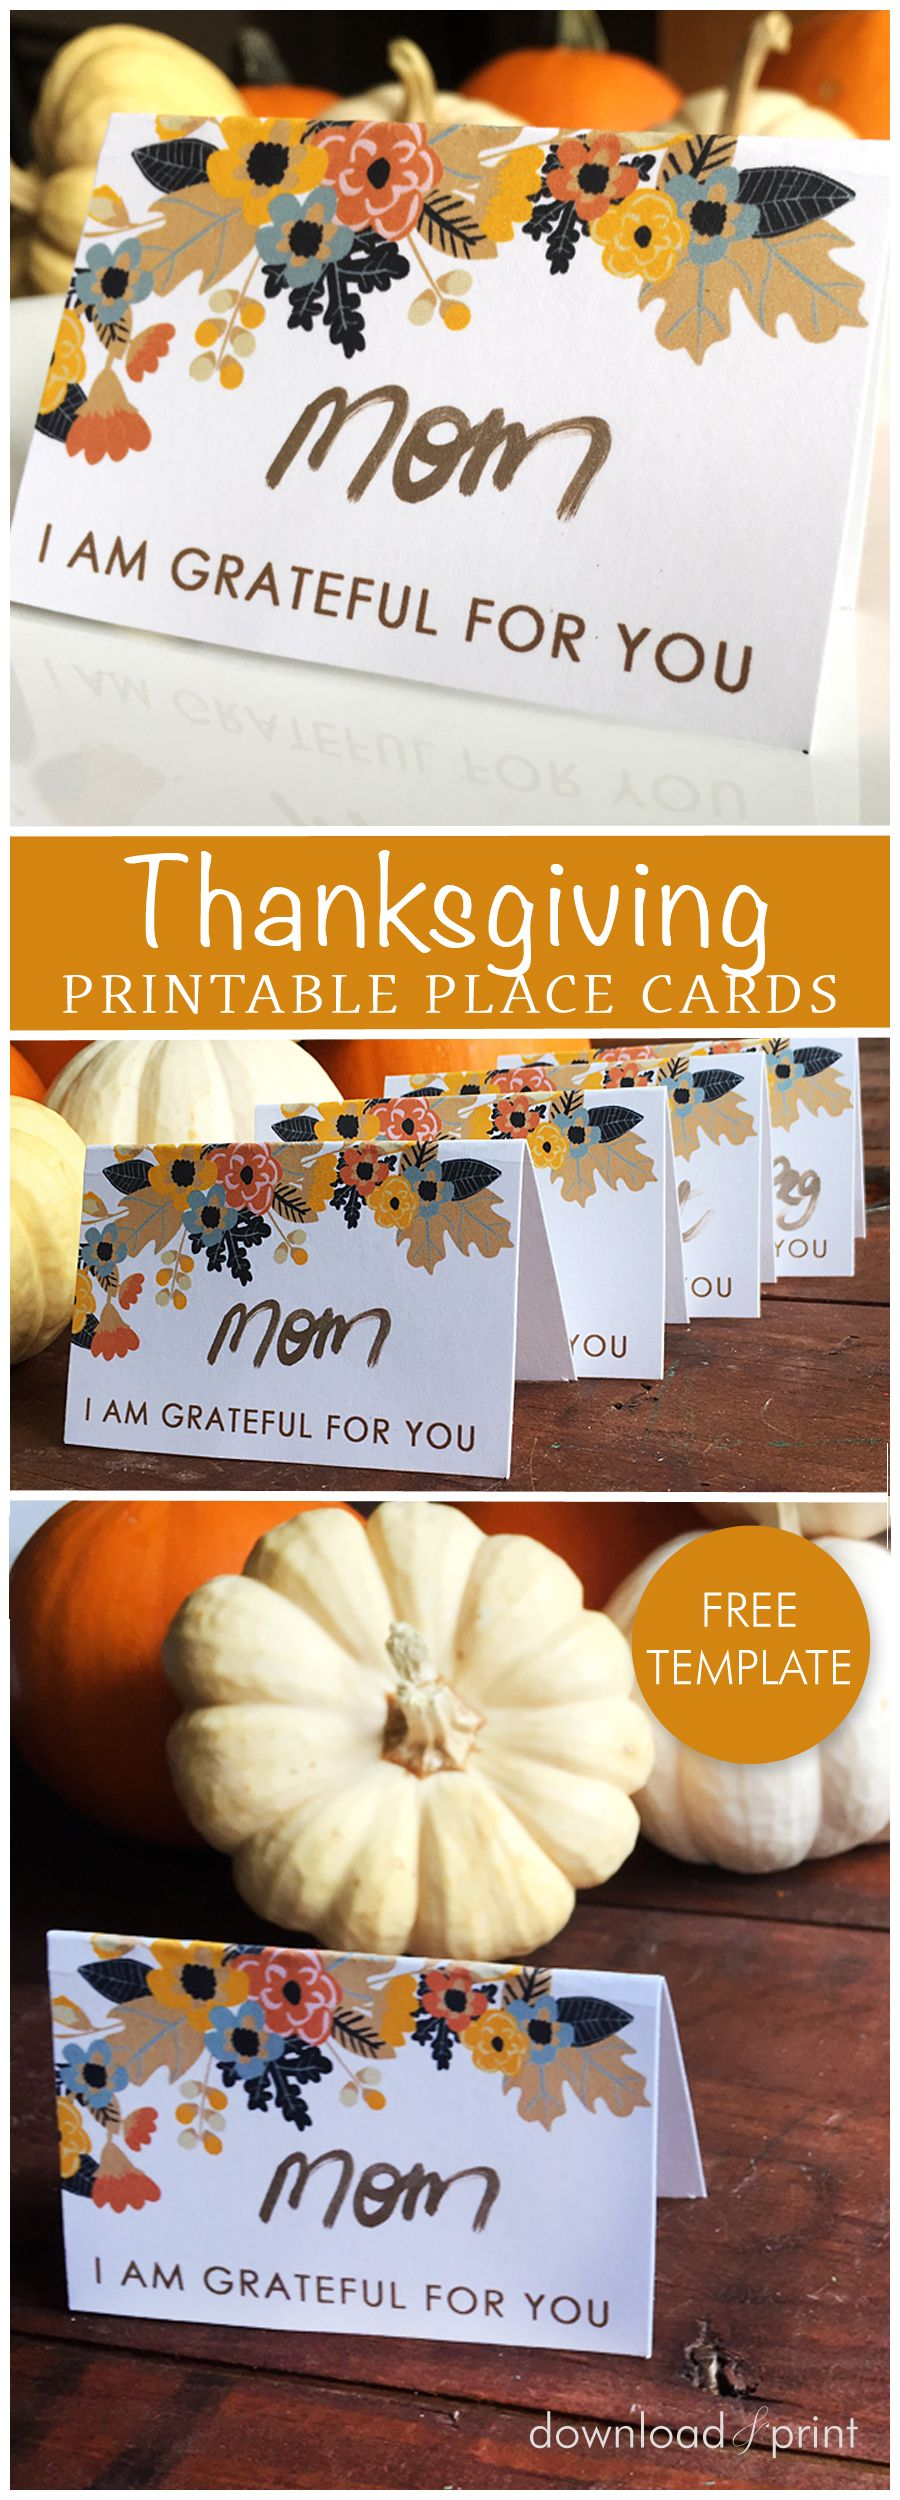 Free Printable Place Card Template Perfect For Your Thanksgiving - Card template free: place card size